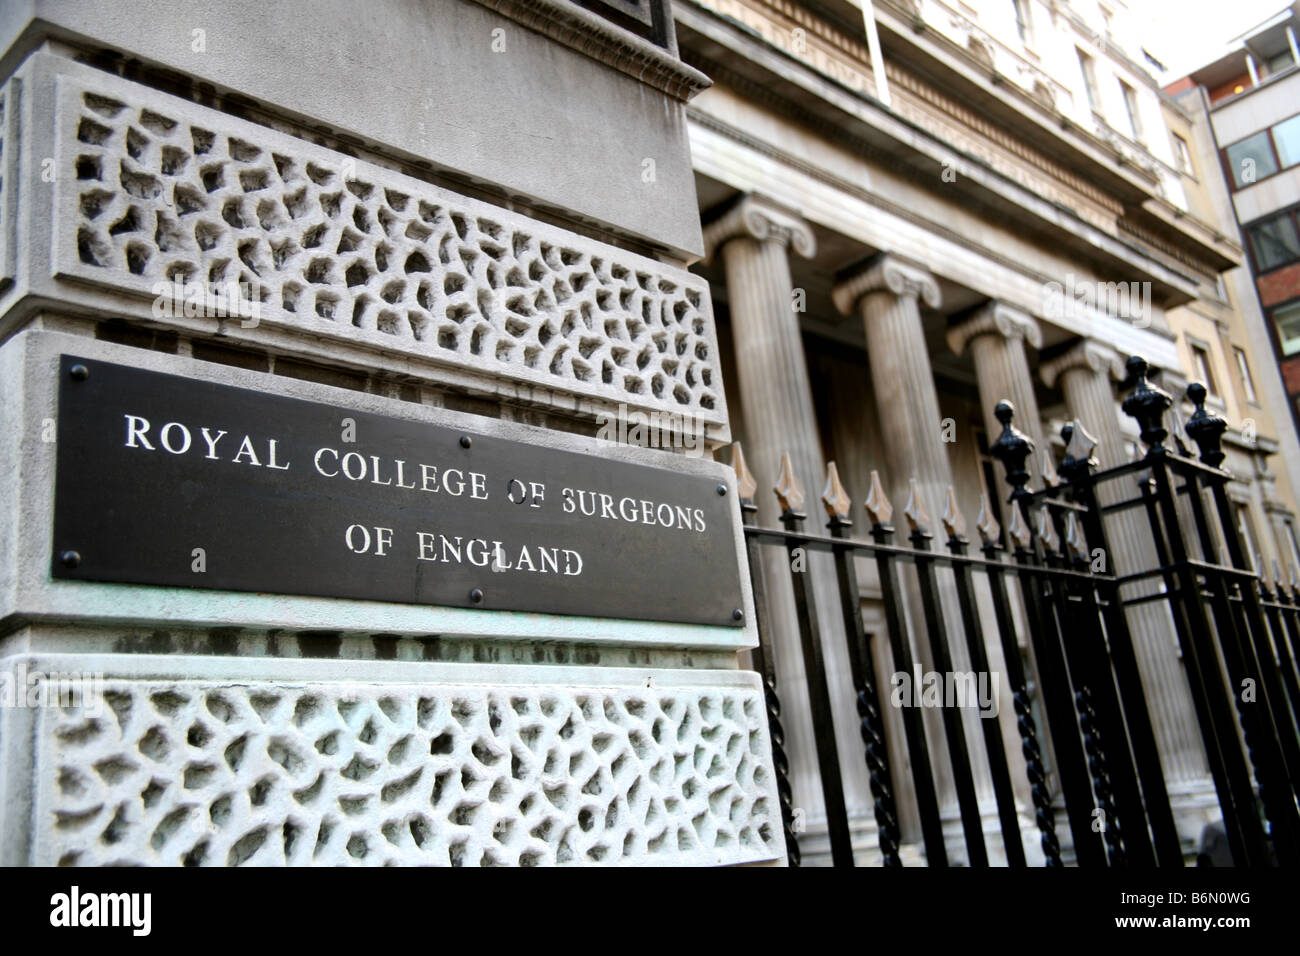 Royal College of Surgeons of England, Lincoln's Inn Fields, London - Stock Image